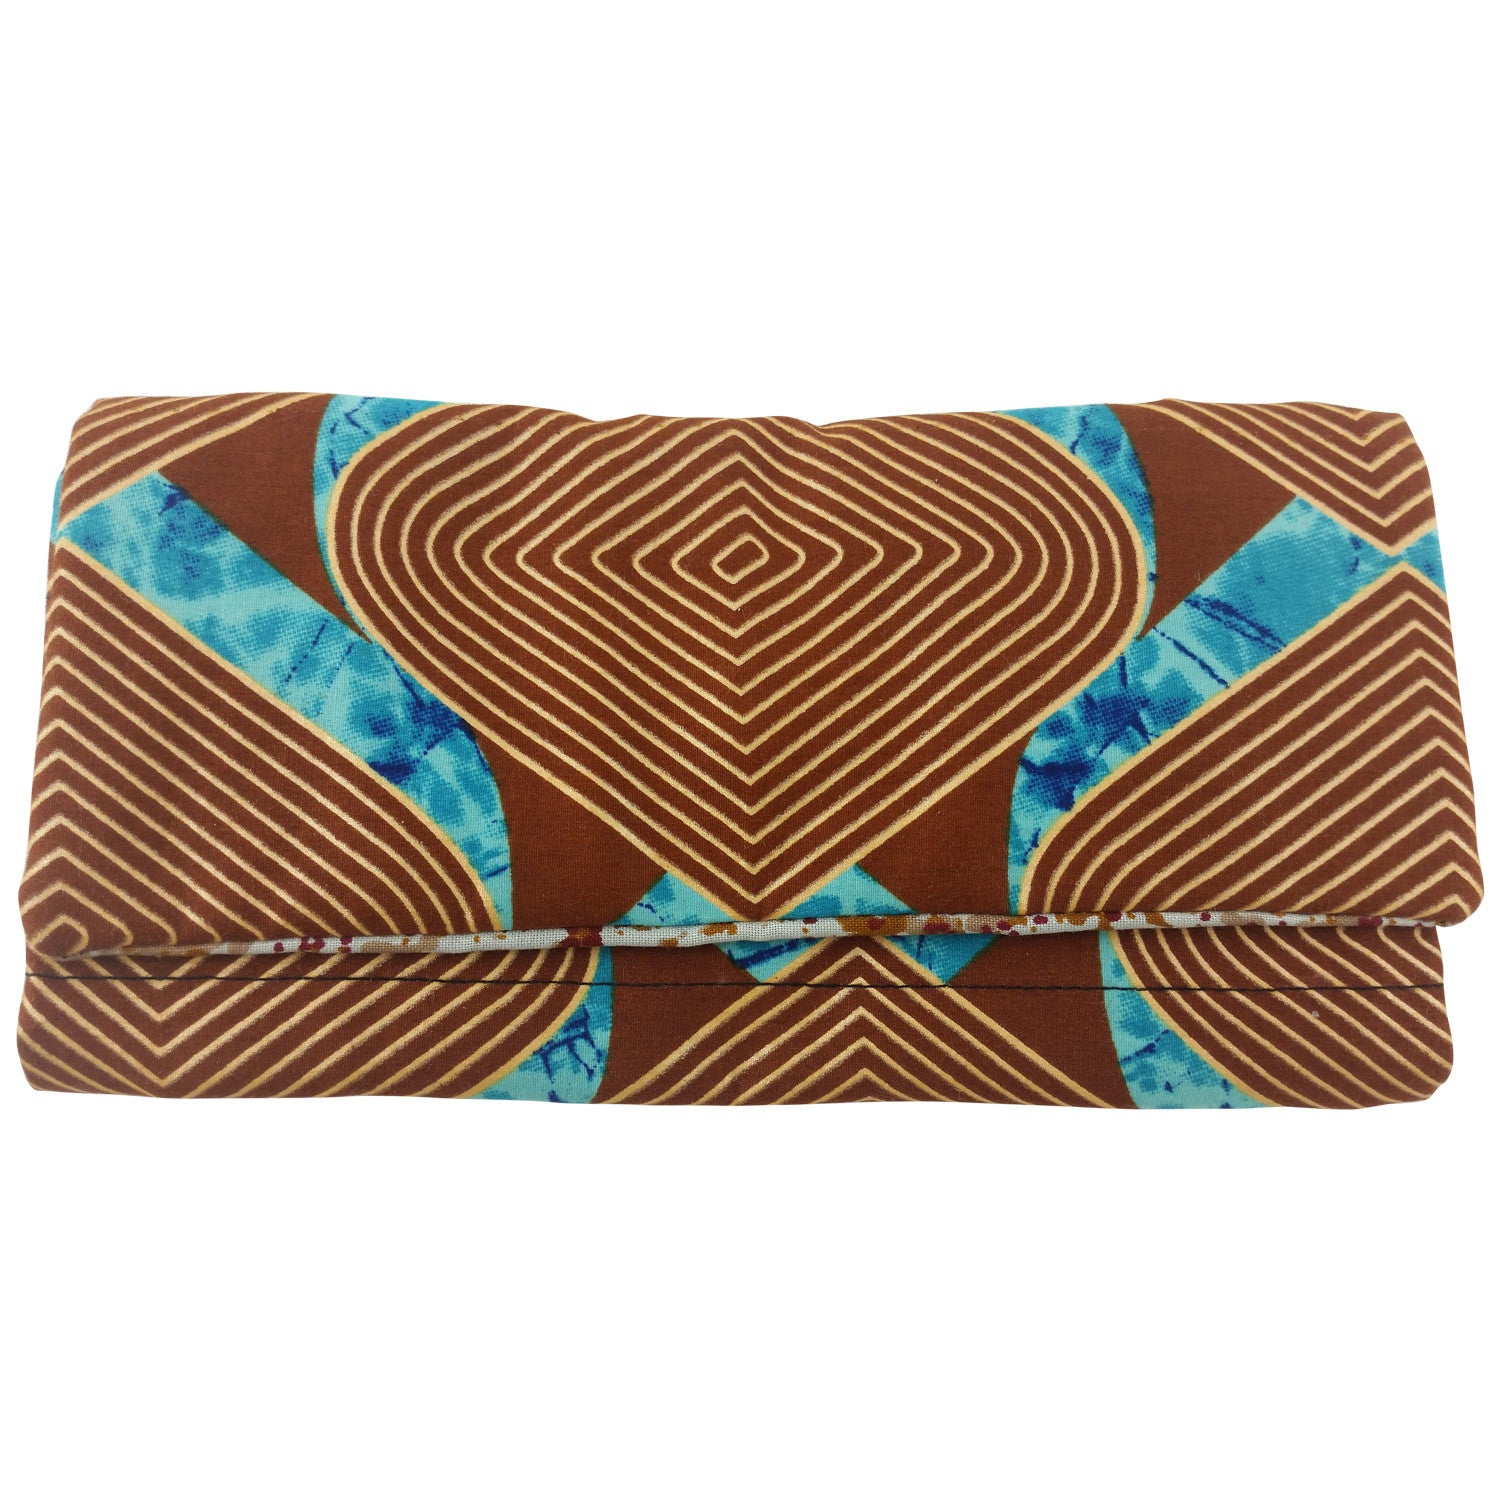 East African Kitenge Fabric Women's Wallet (Brown, Beige and Blue)